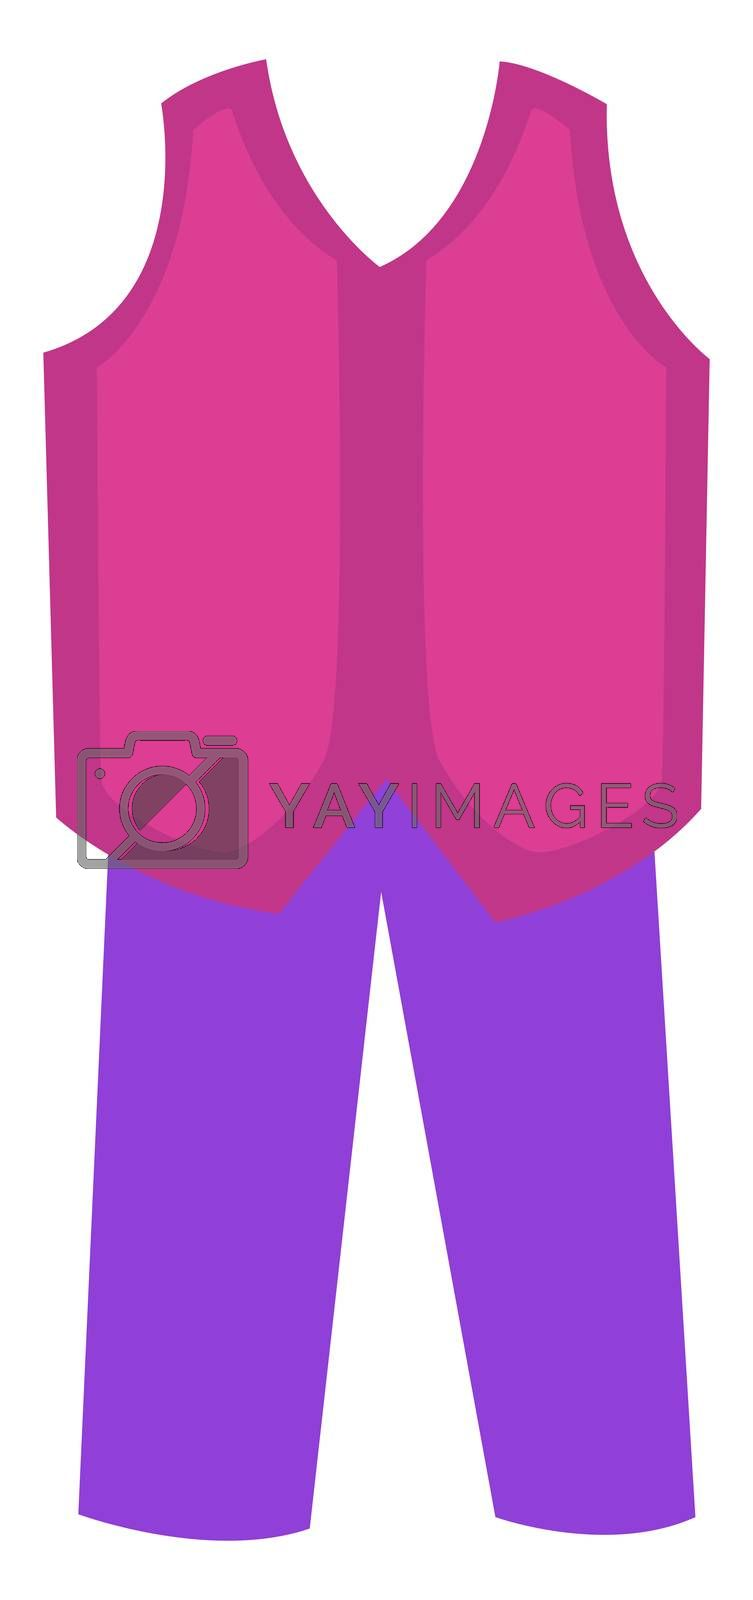 Royalty free image of Woman pink suit, illustration, vector on white background by Morphart